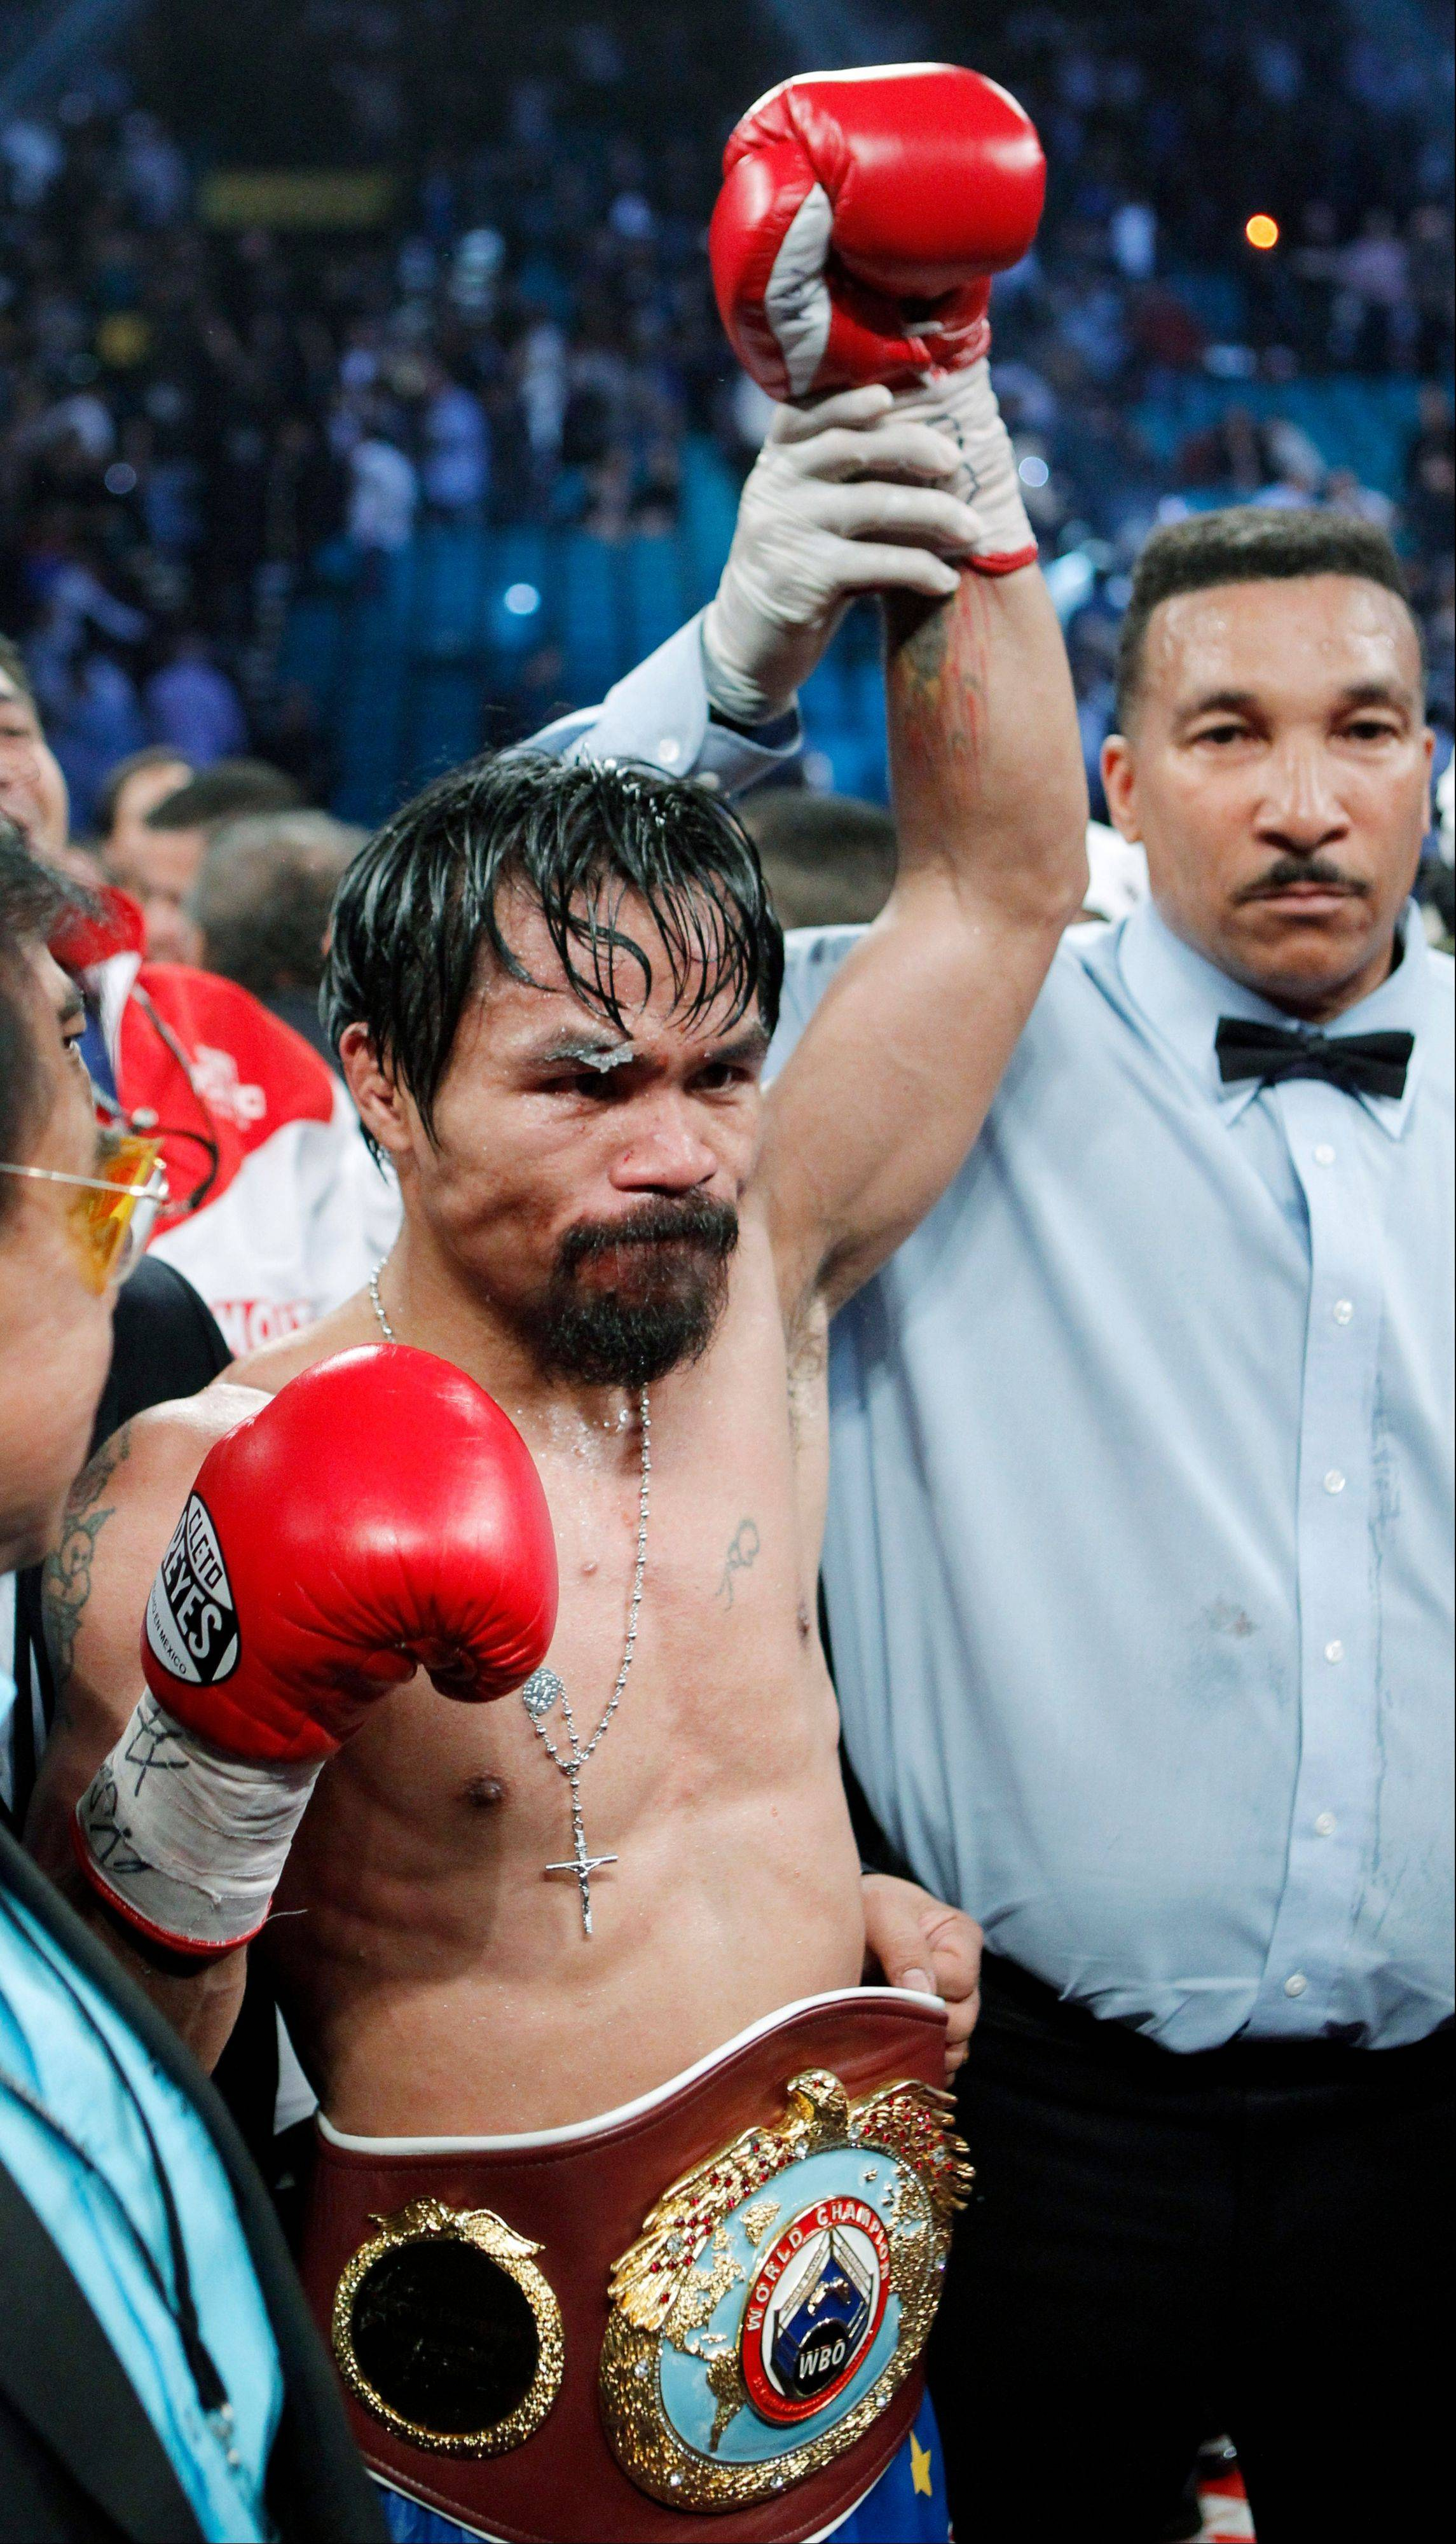 Floyd Mayweather challenged and taunted Manny Pacquiao, shown here after his victory over Juan Manuel Marquez in November, to a May 5 bout in a tweet on Tuesday.